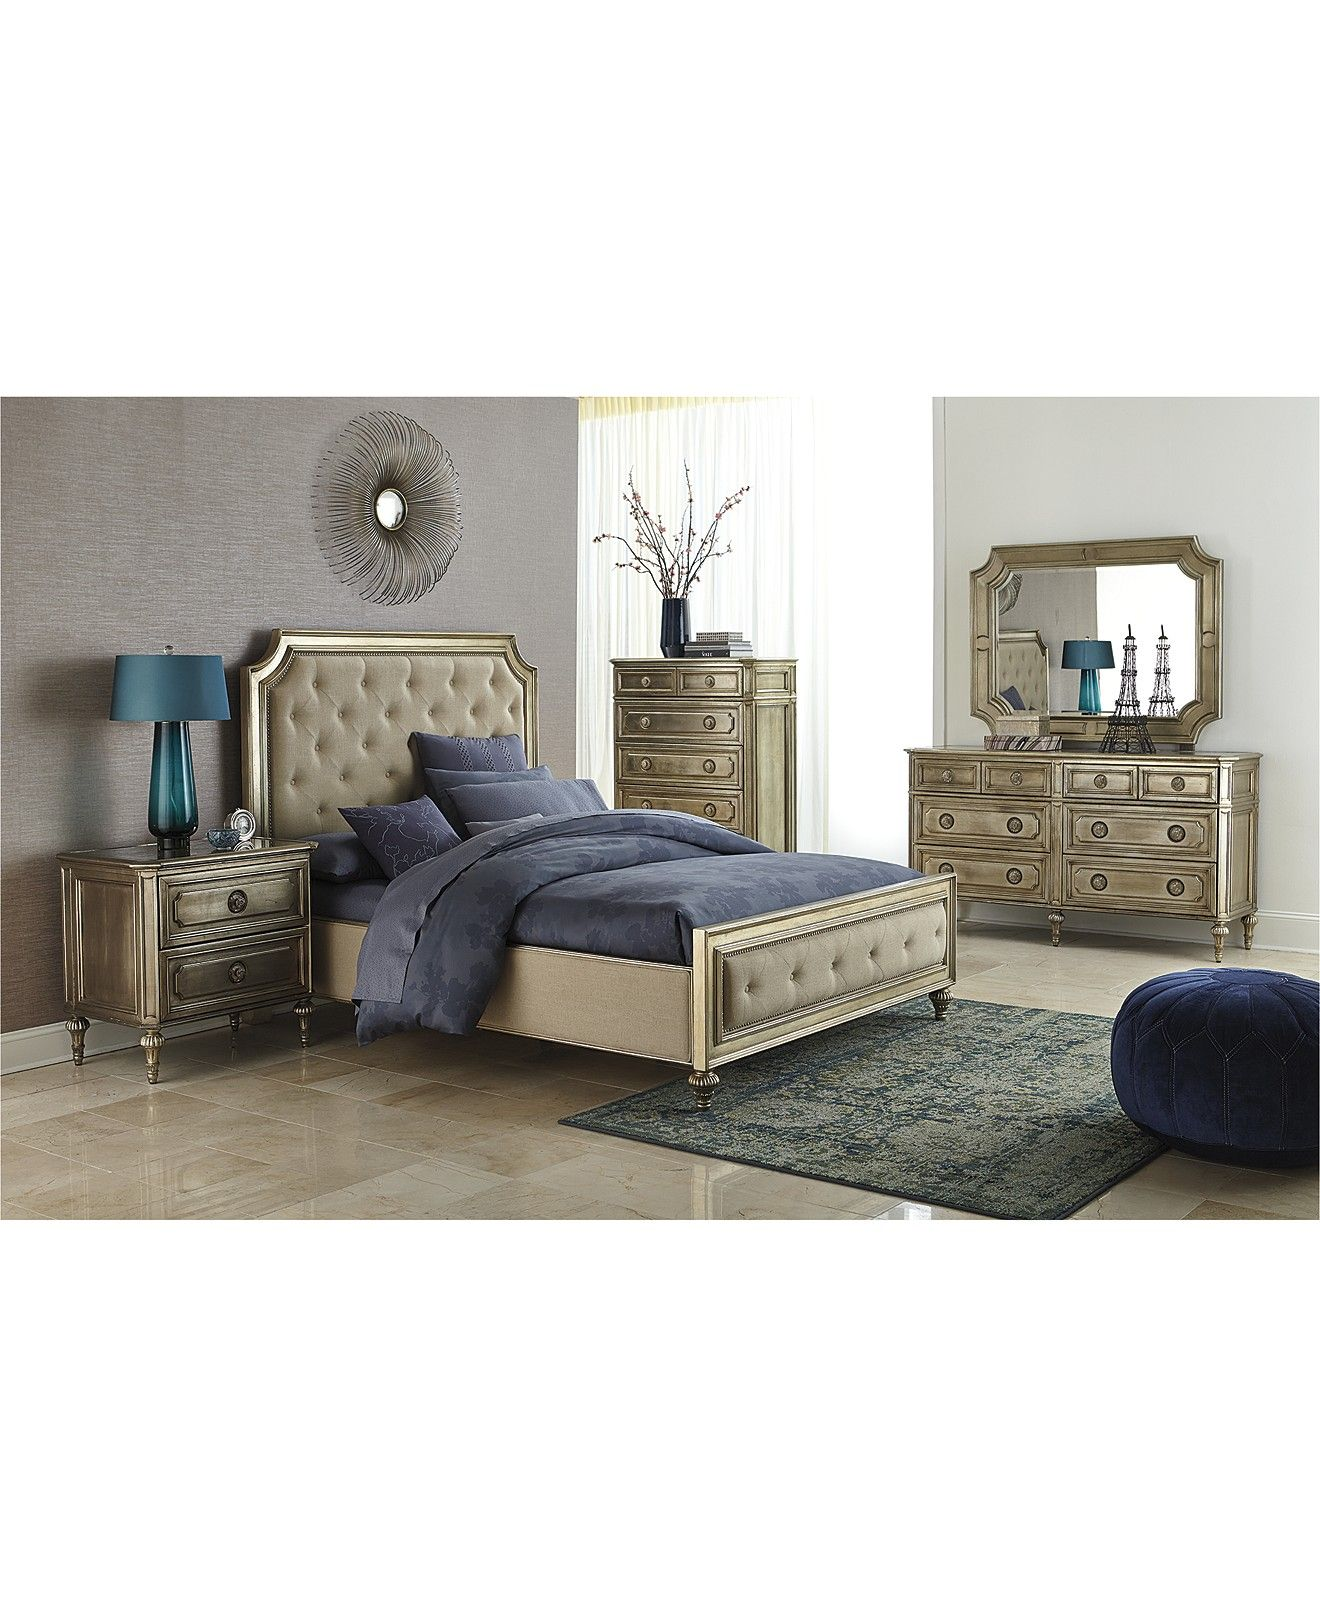 Prosecco Piece Queen Bedroom Furniture Set With Chest Shop All